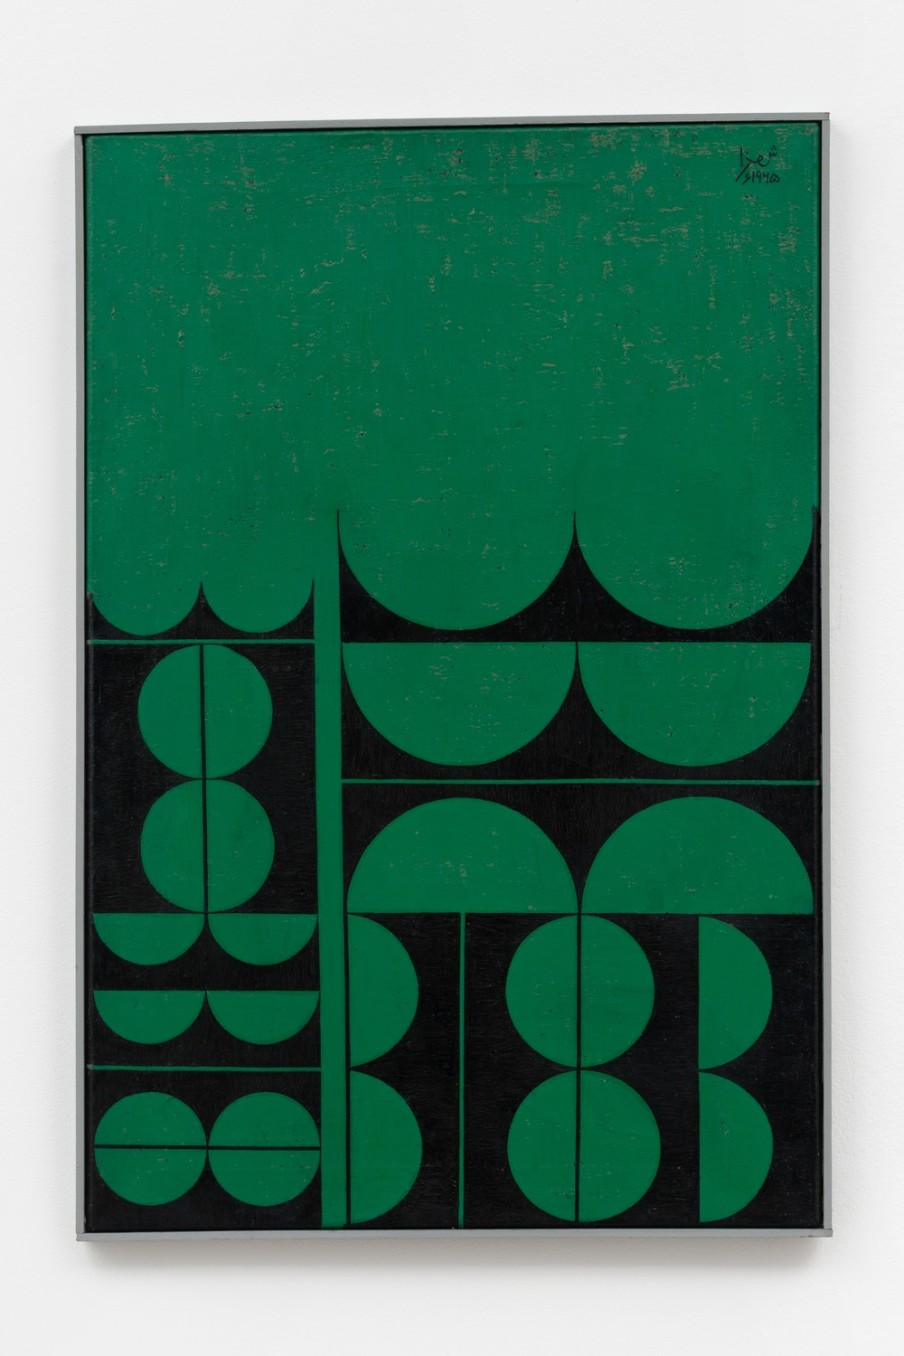 Anwar Jalal Shemza, Composition In Green And Black, 1965, Oil On Canvas, 77.3 X 52.2 cm